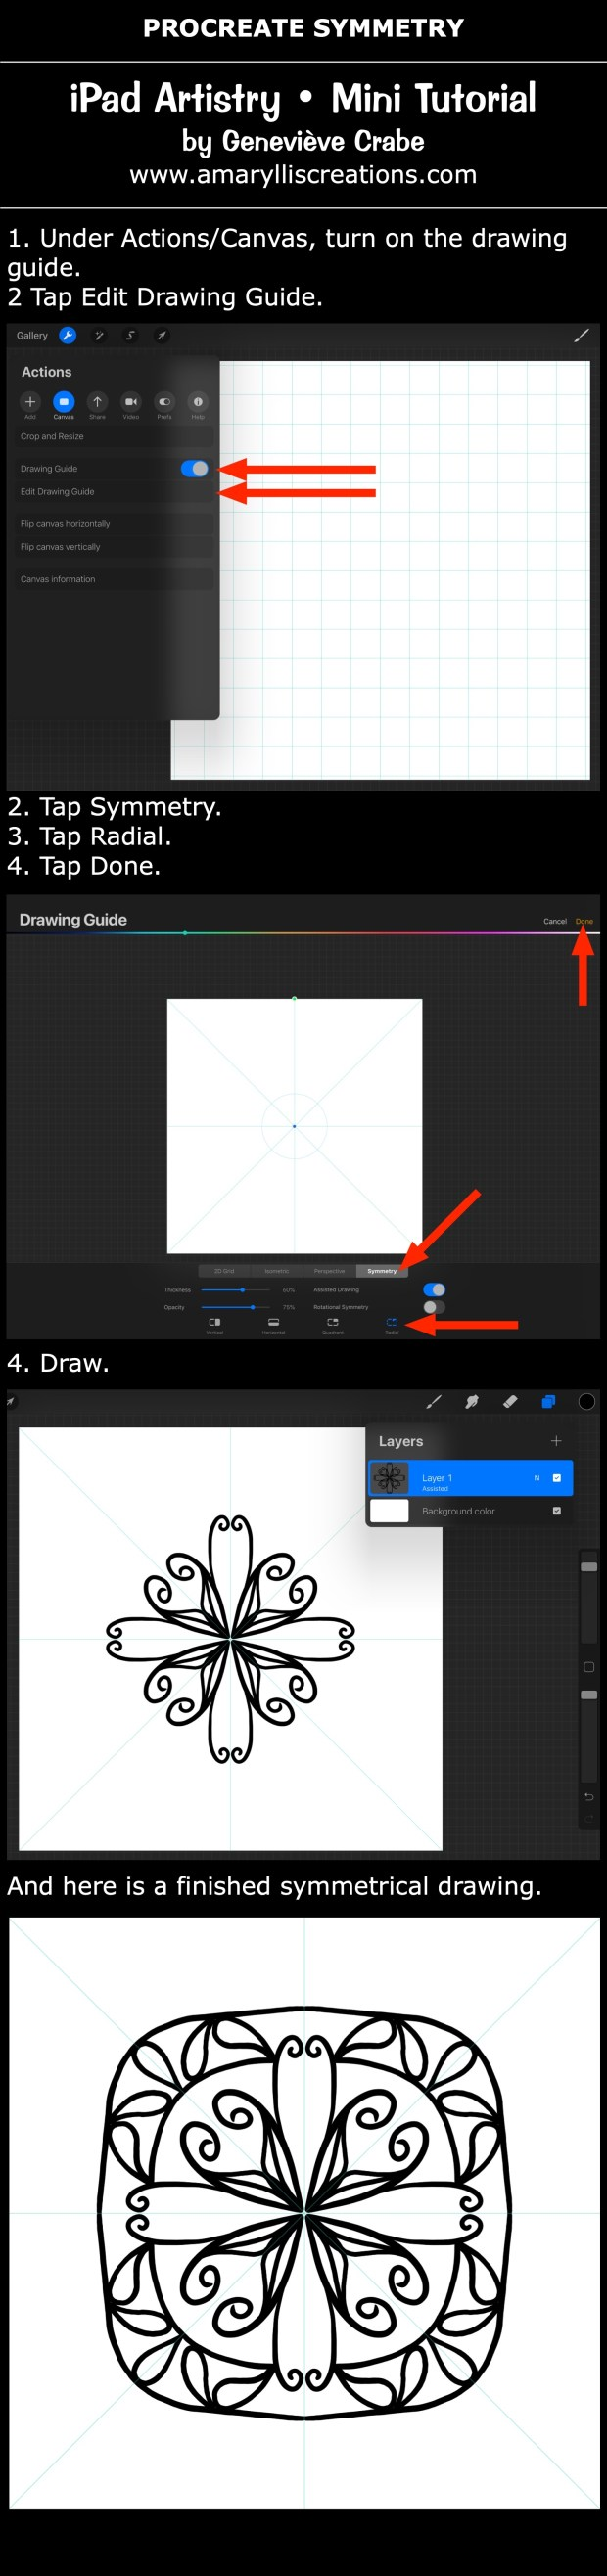 Mini tutorial: Draw with Symmetry in Procreate on iPad